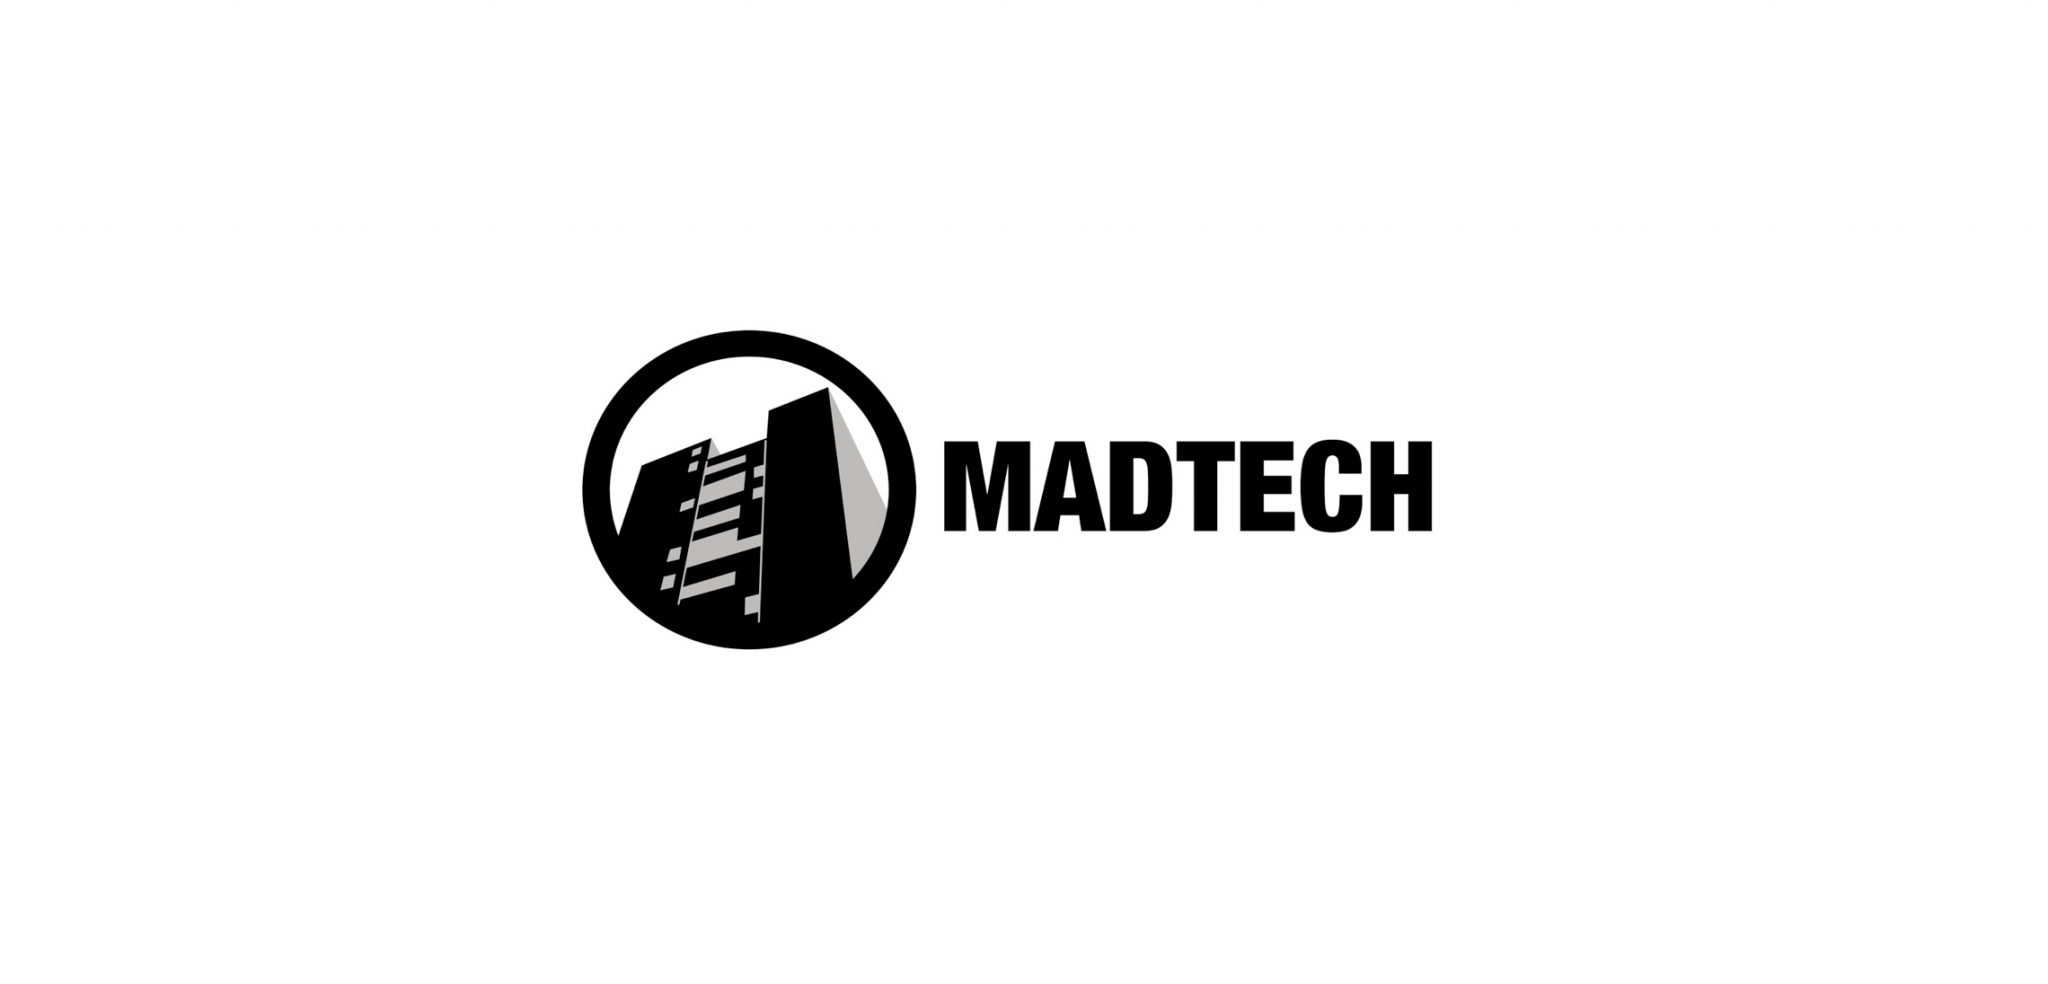 Madtech - Summer 17 hero